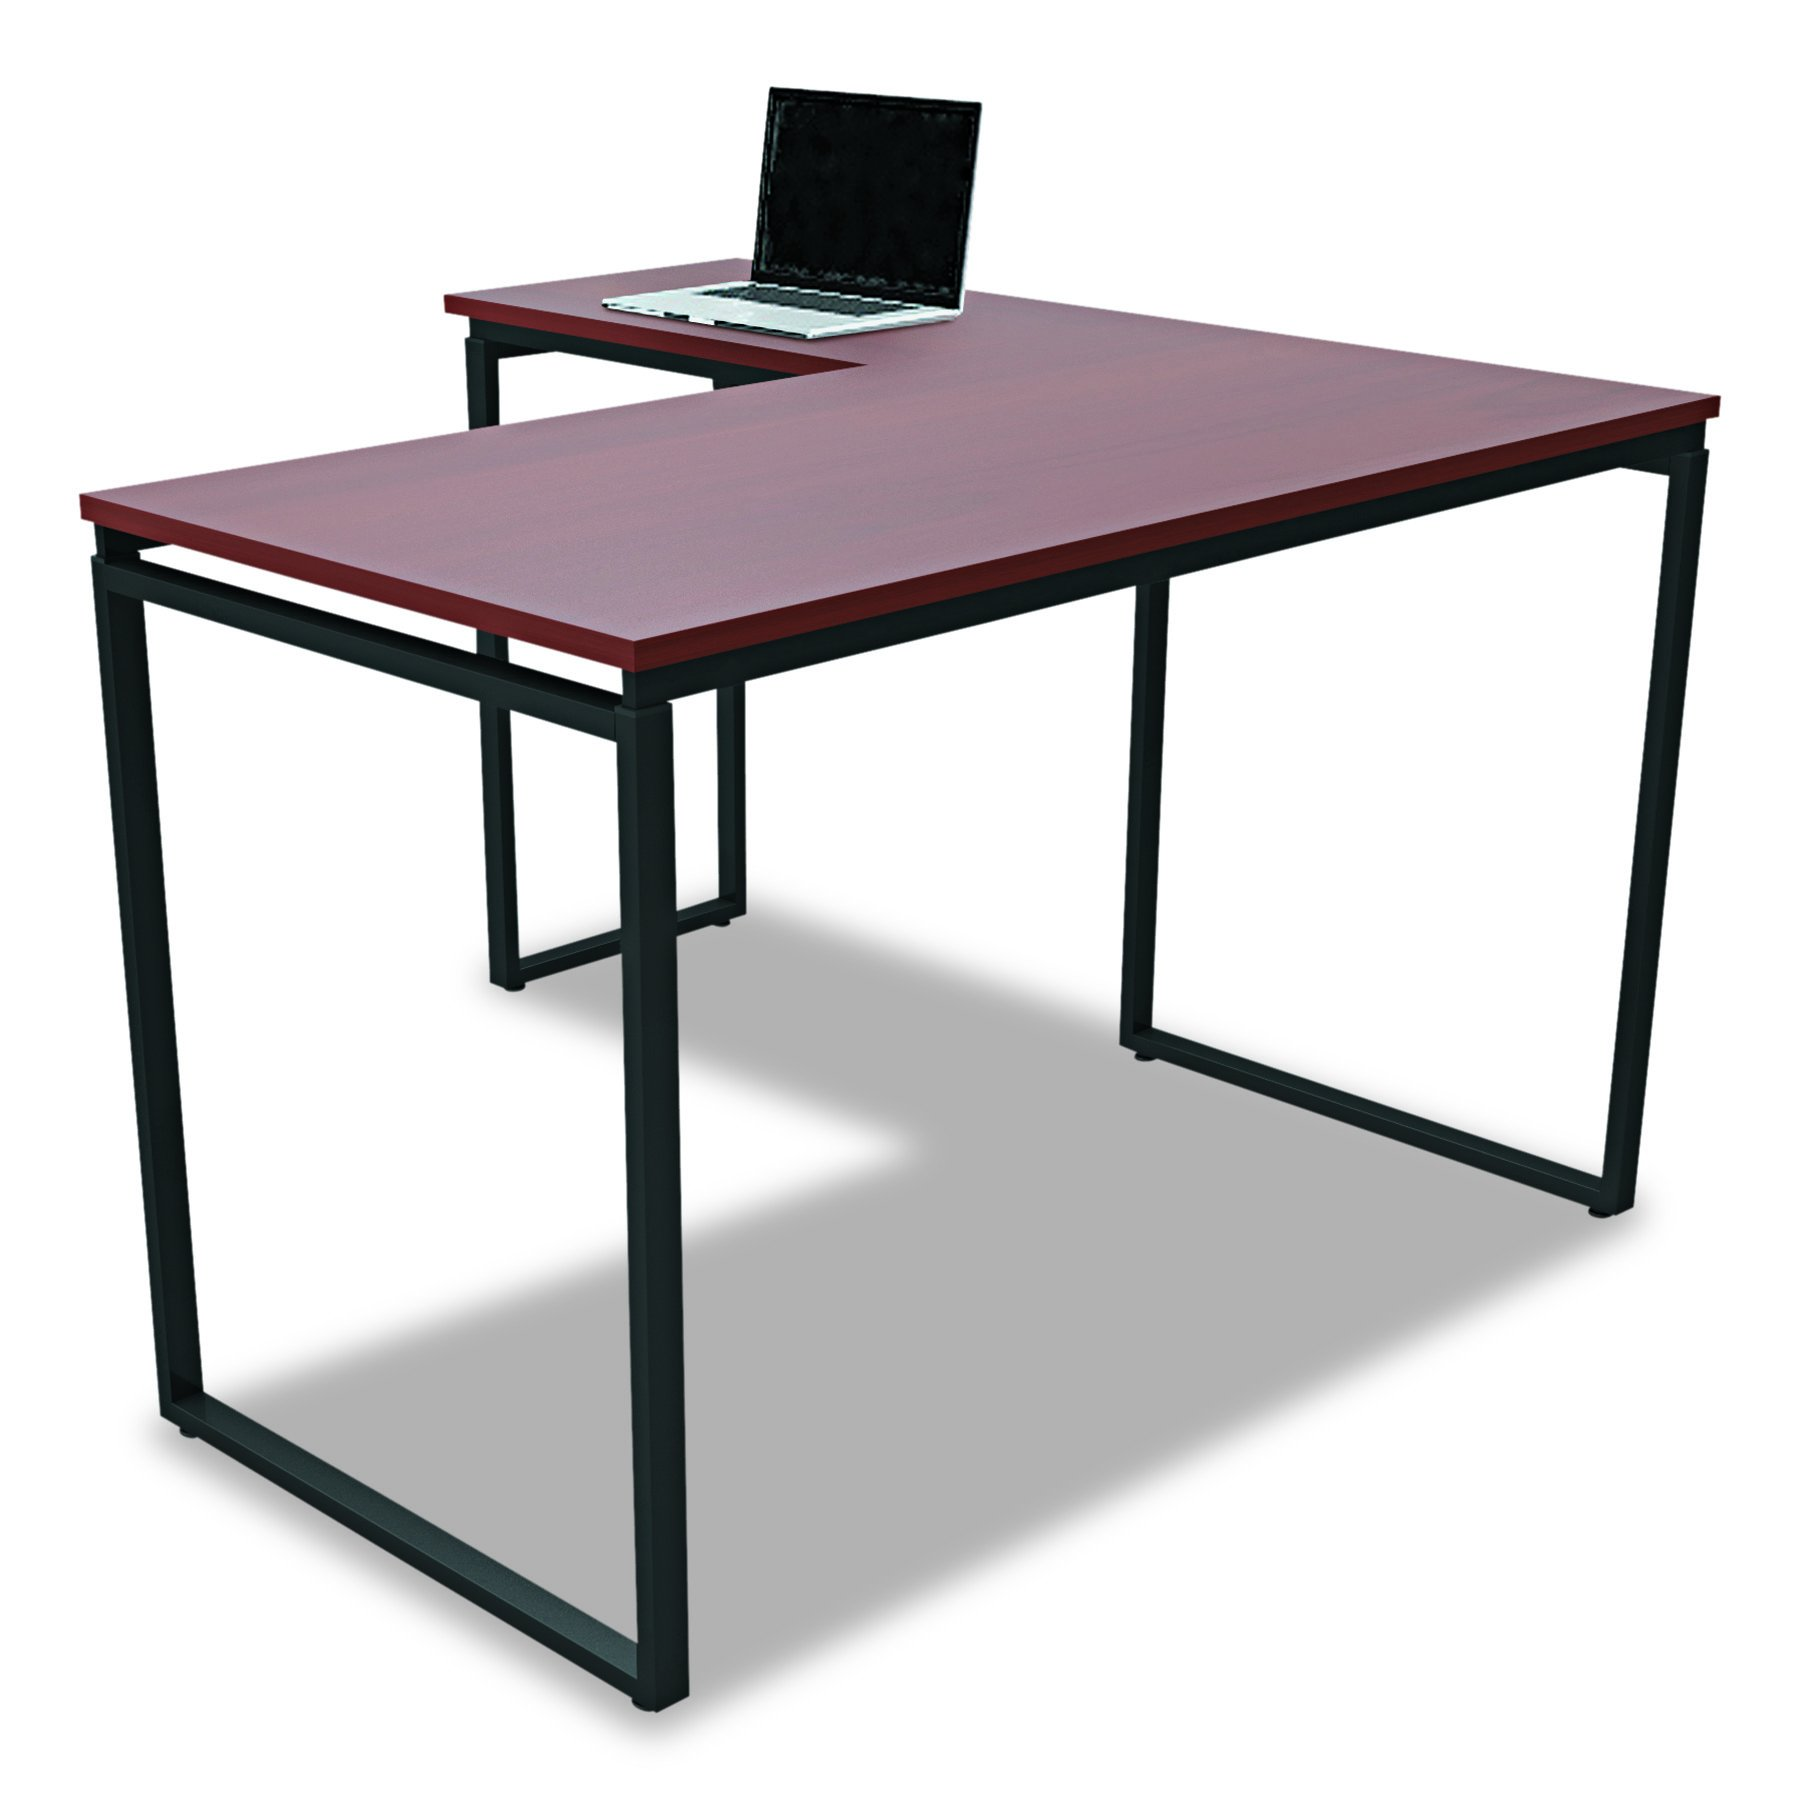 Linea Italia SV751CH Seven Series L-Shaped Desk, 60'' by 60'' by 29-1/2'', Cherry by Linea Italia